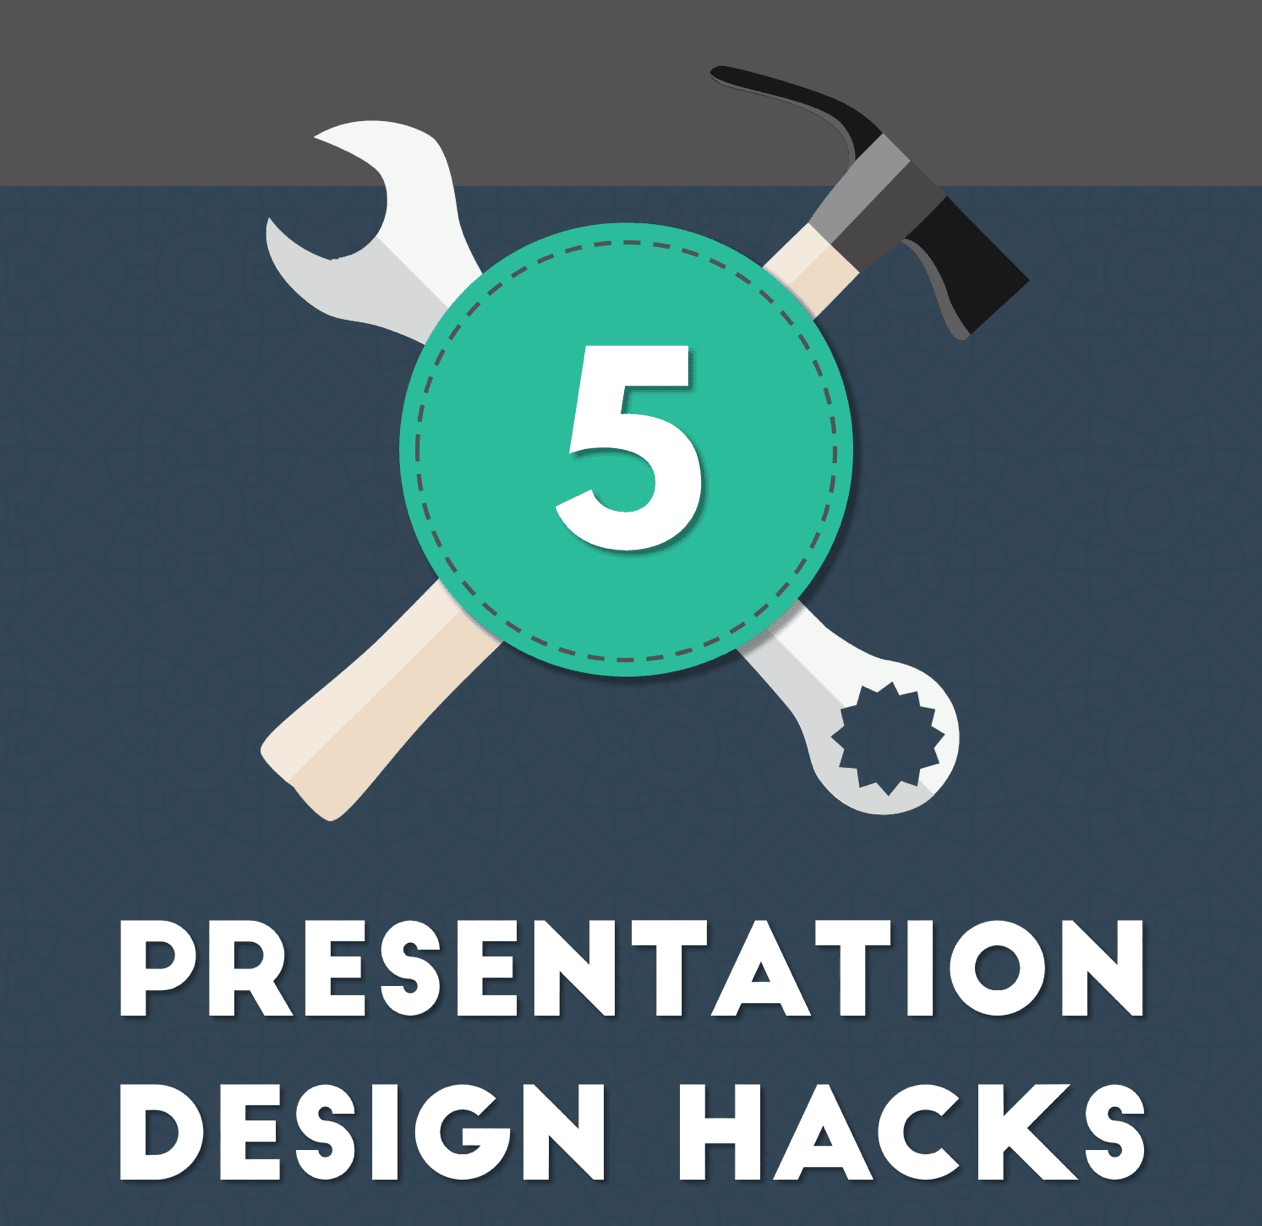 Presentation Design Hacks